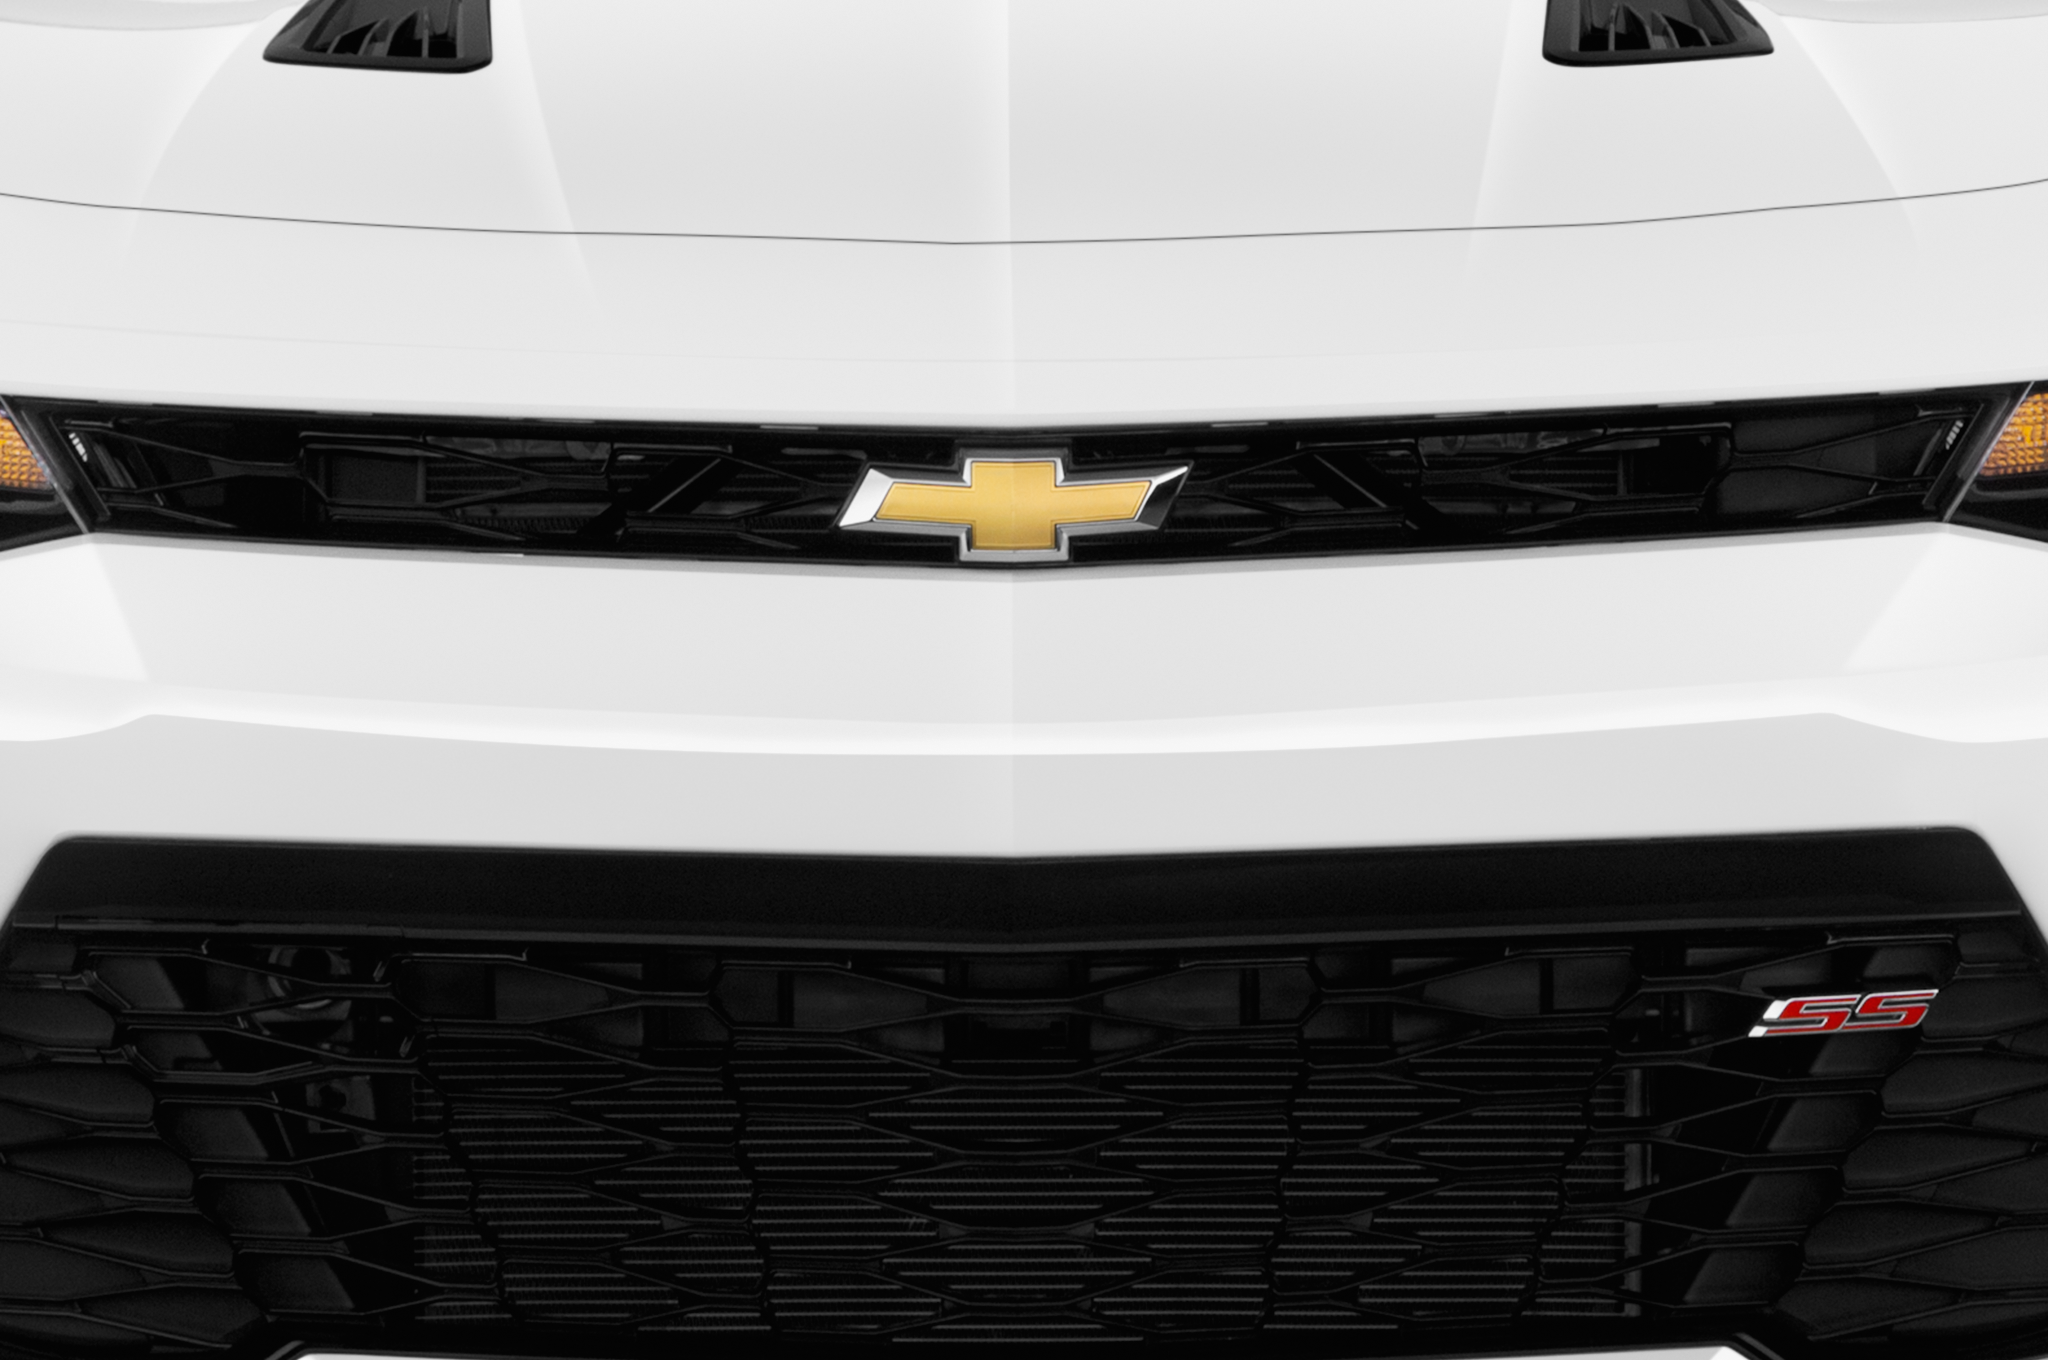 Callaway Chevrolet Camaro SC600 Supercharged to 600+ HP